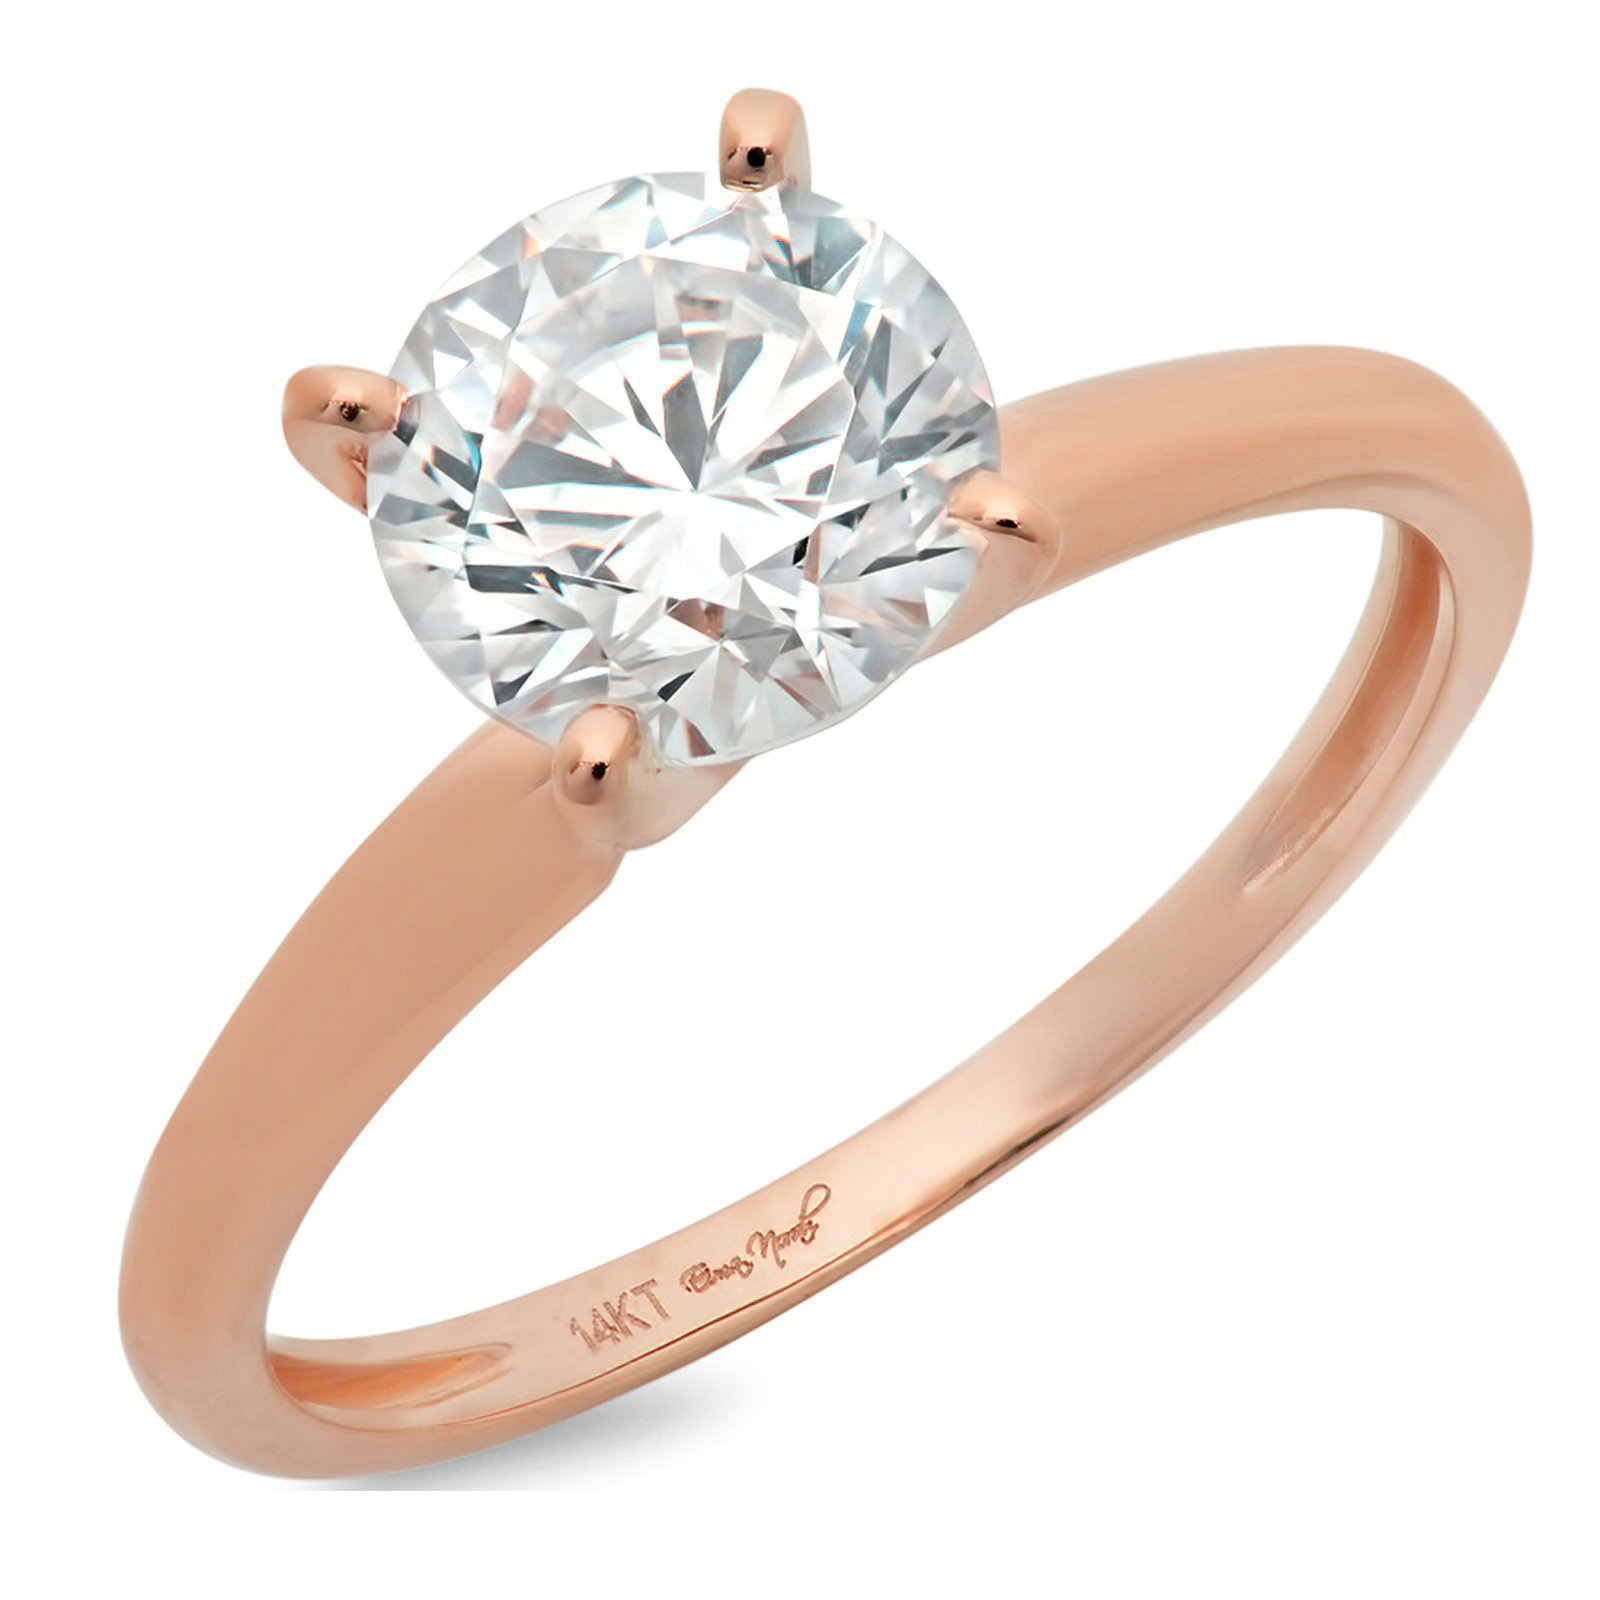 2.2ct Round Brilliant Cut Classic Wedding Statement Anniversary Designer Engagement Bridal Promise 4-prong Solitaire Ring 14k Rose Gold, Clara Pucci, 5.5 by Clara Pucci